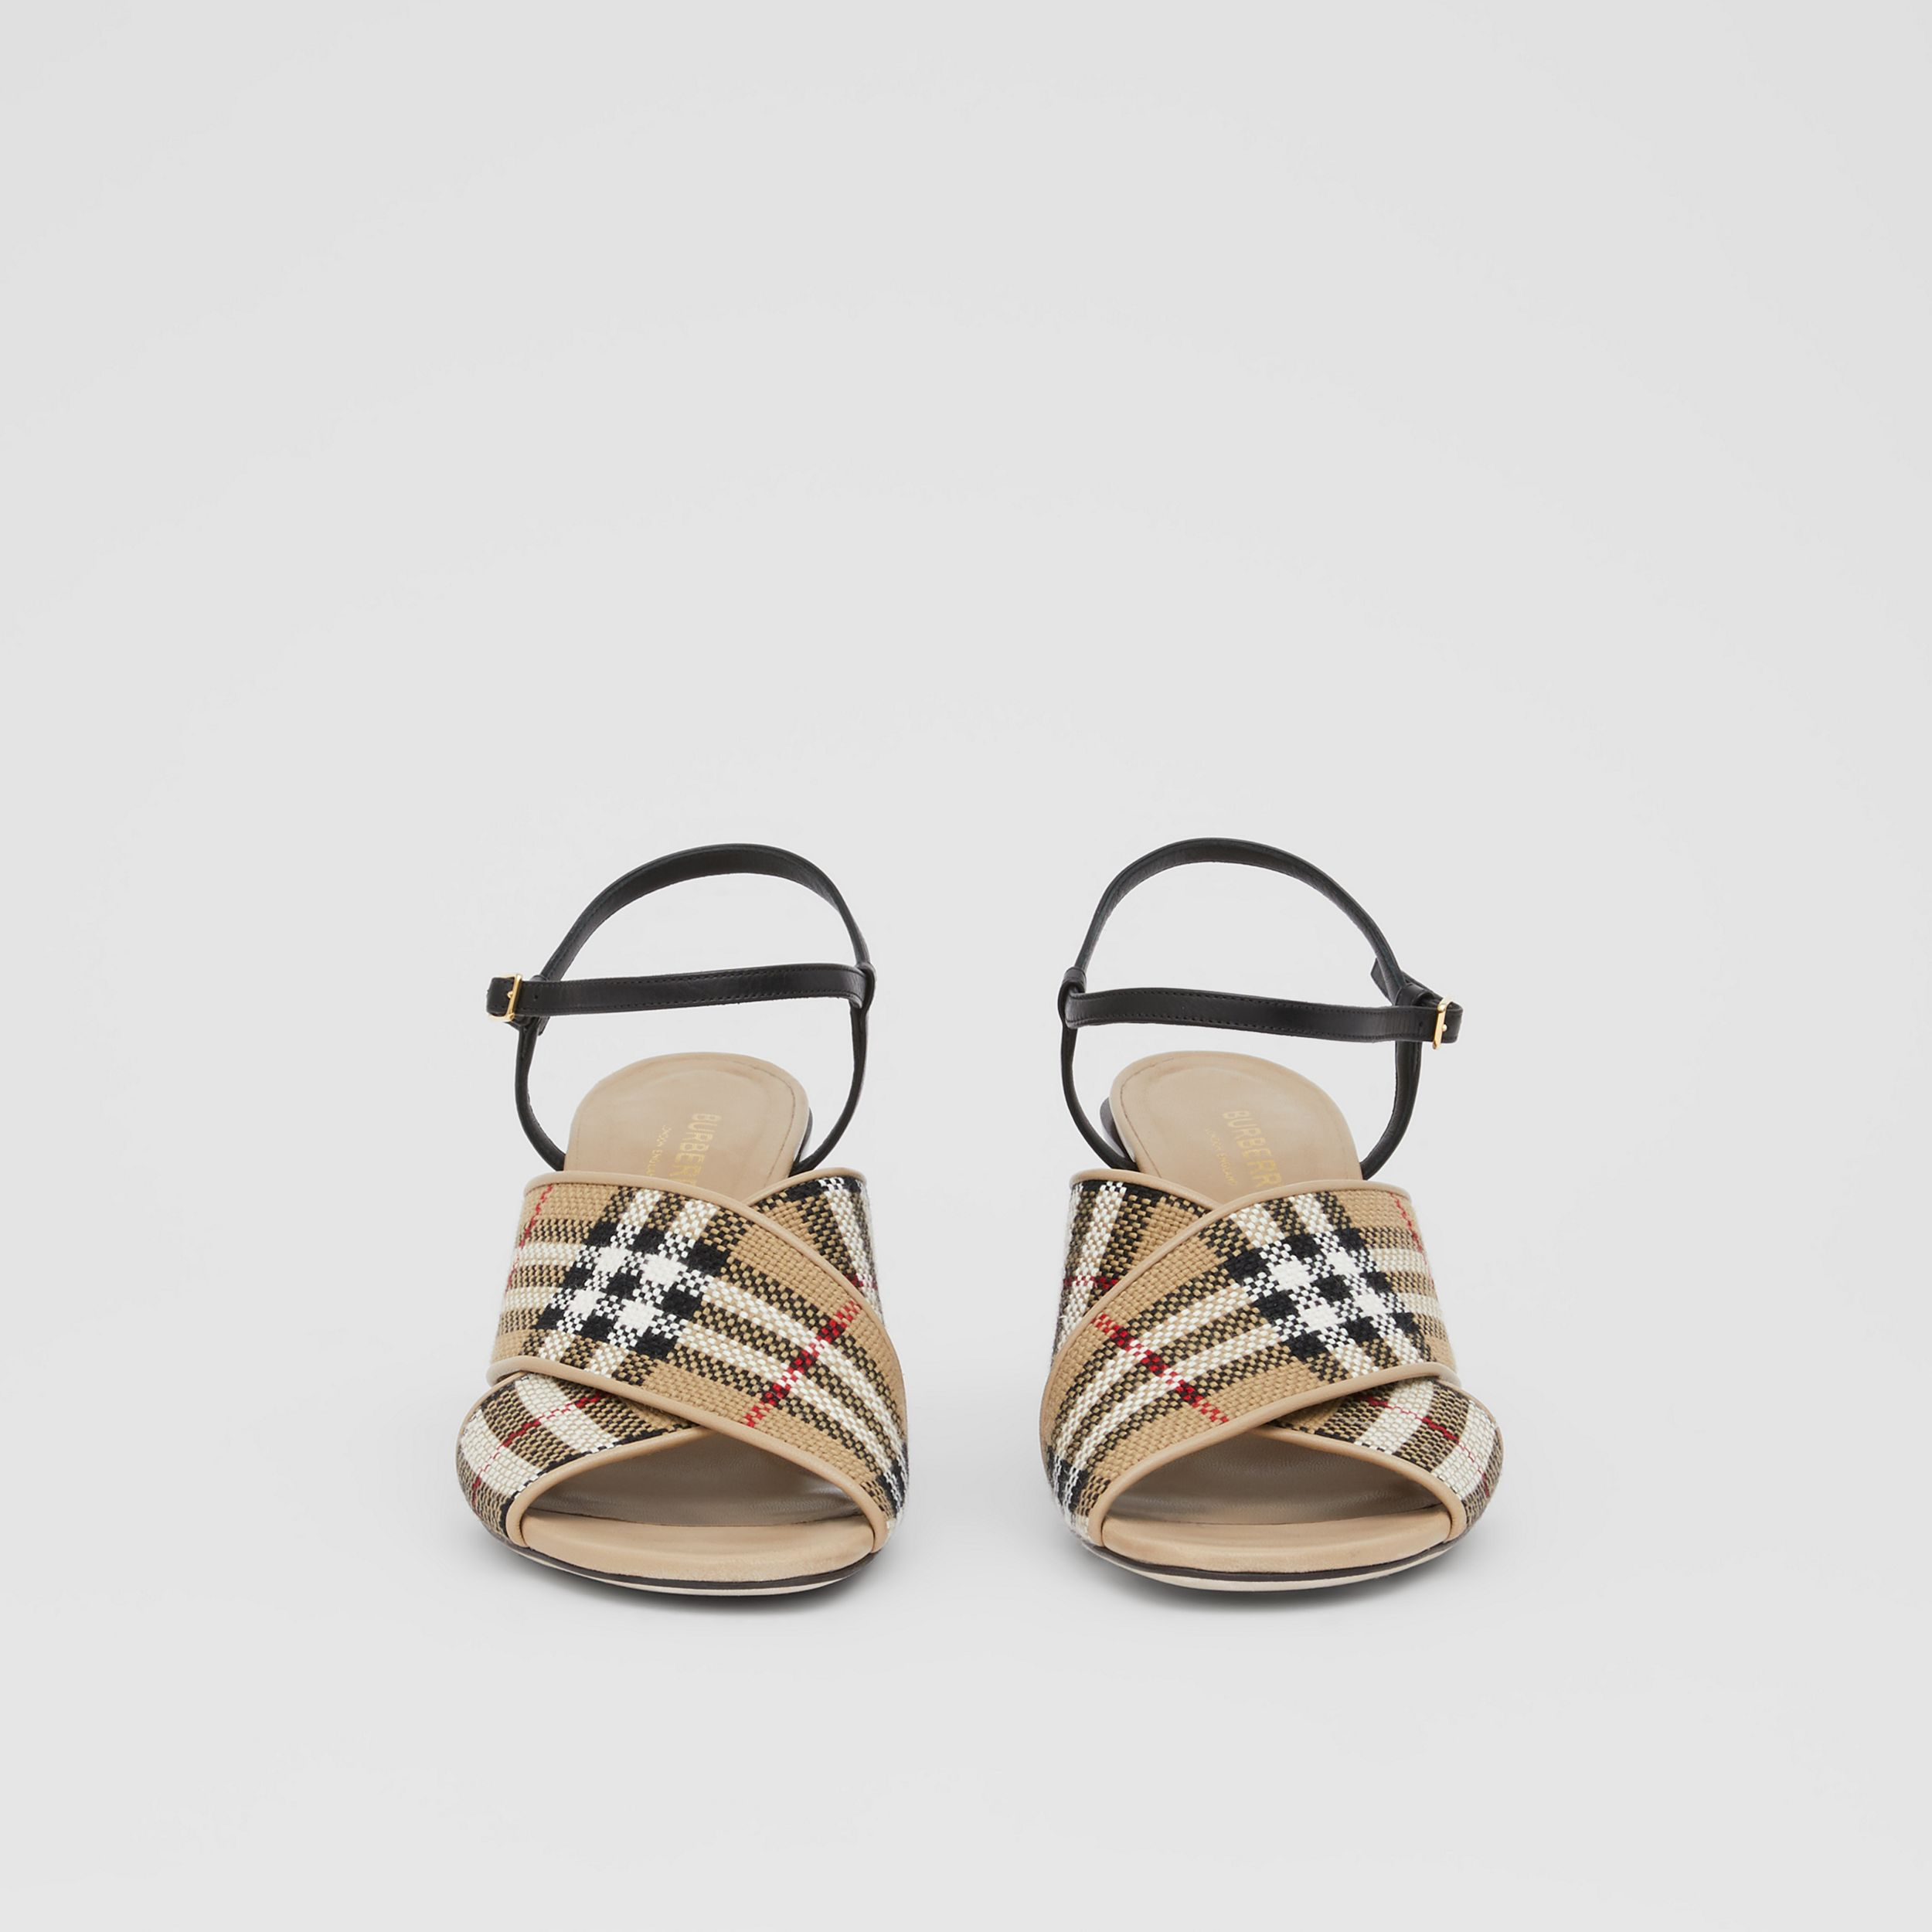 Latticed Cotton and Leather Block-heel Sandals in Archive Beige/black - Women | Burberry - 4